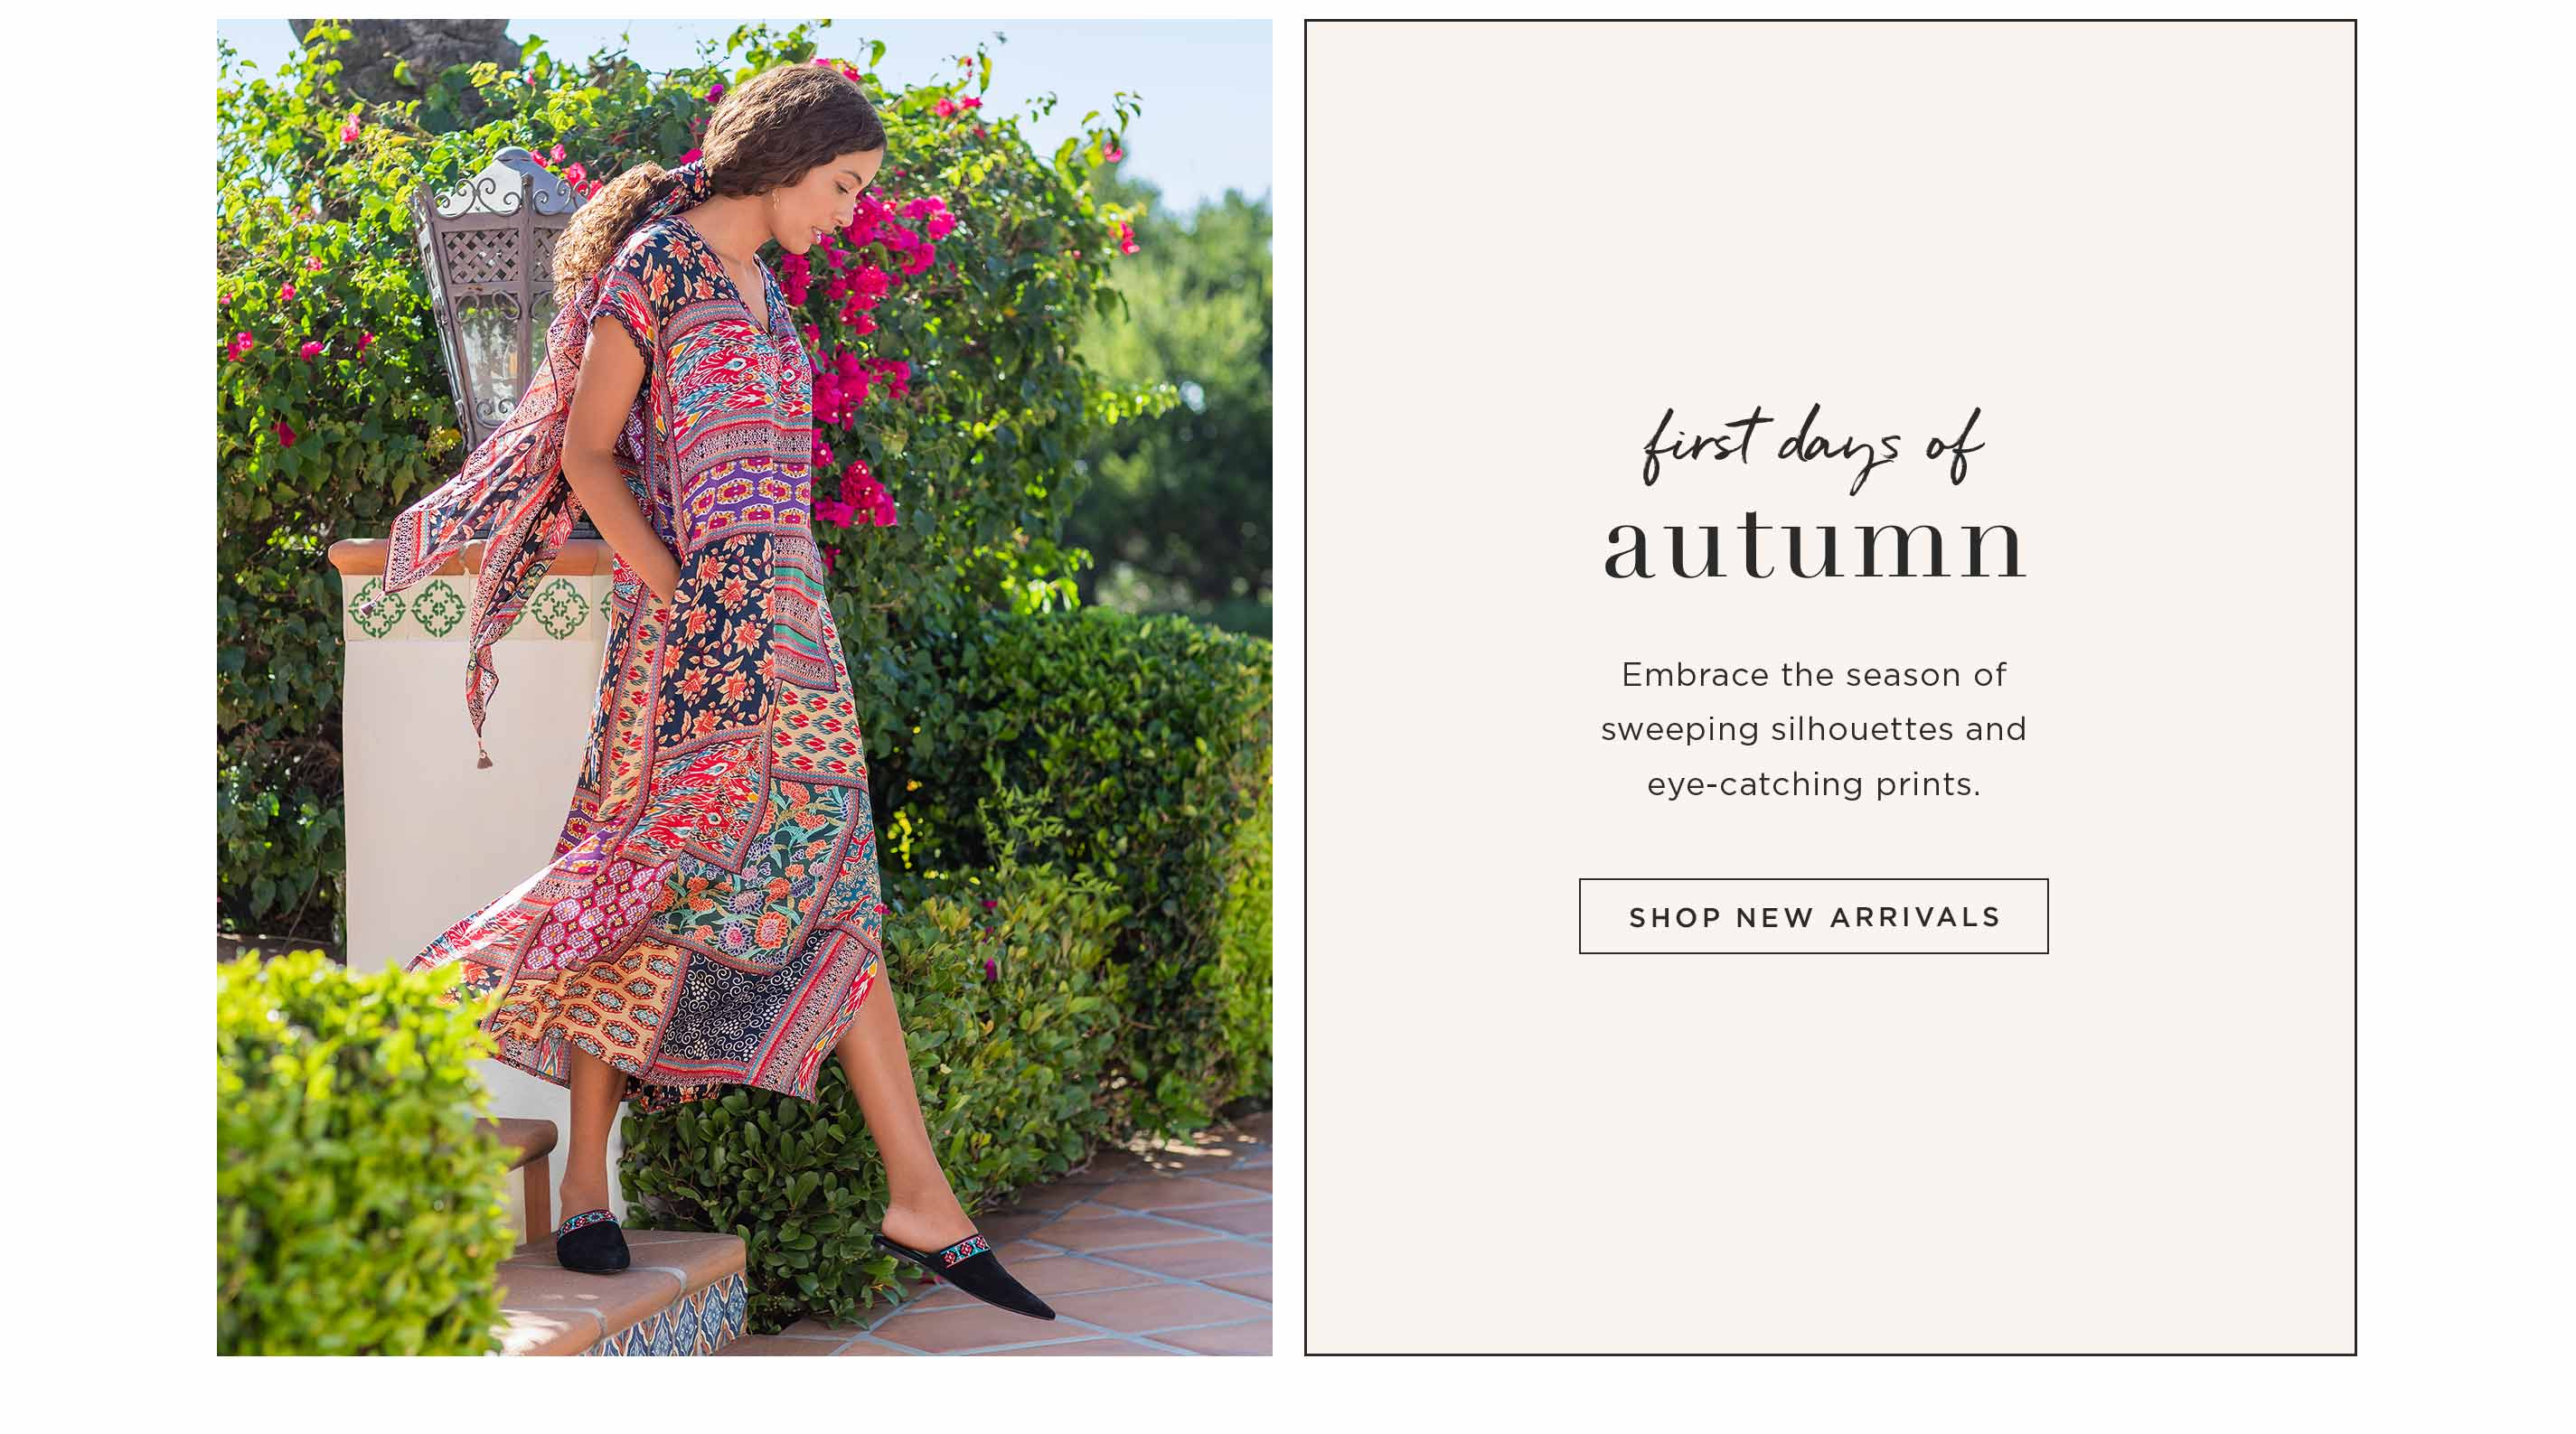 First Days of Autumn - Embrace the season of sweeping silhouettes and eye-catching prints - Shop New Arrivals